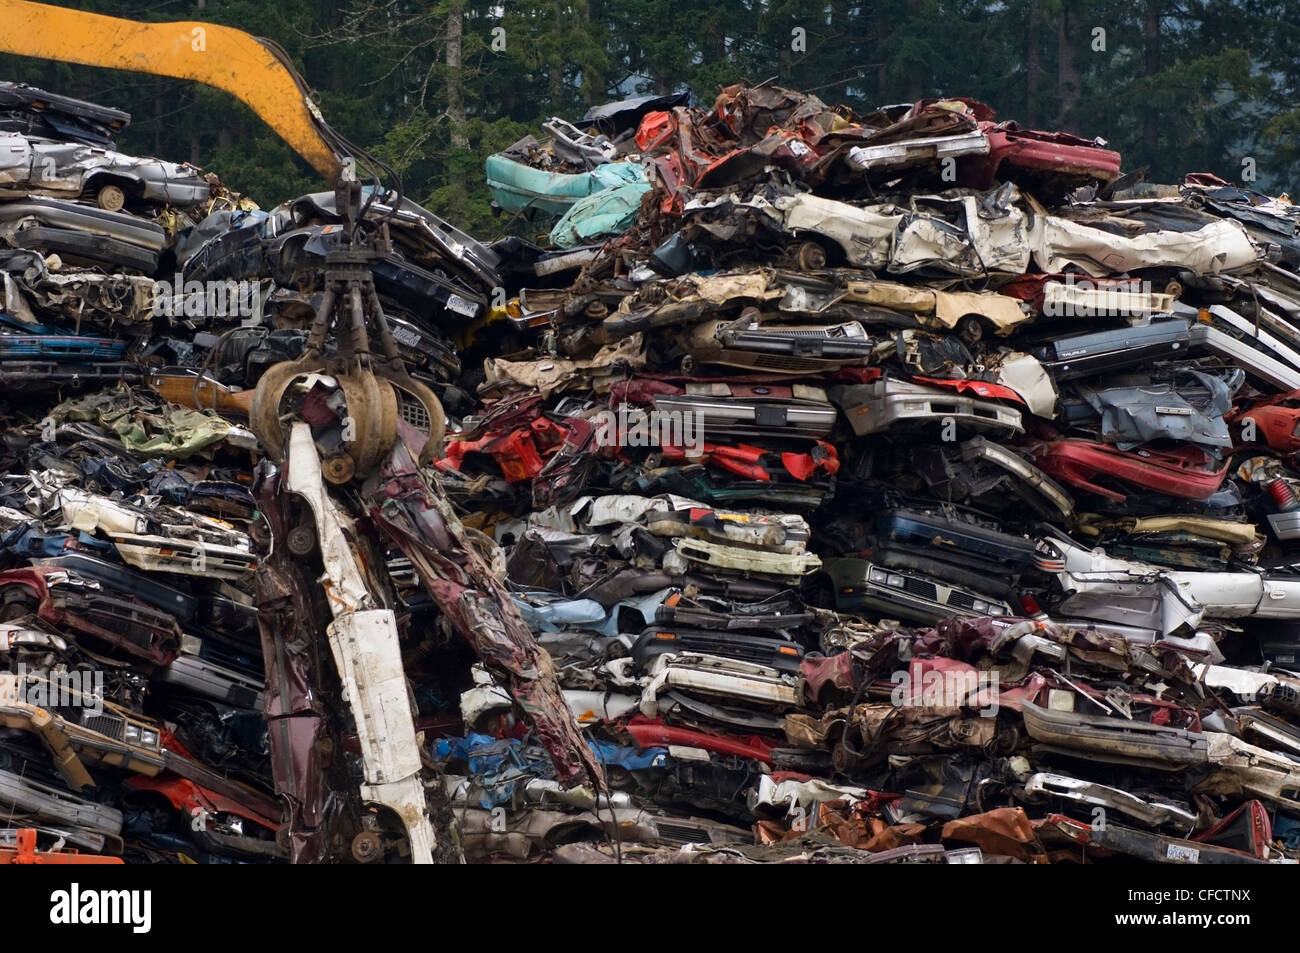 Crane lifting flattened cars out of stack of obsolete cars in recycling yard, Vancouver Island, British Columbia, - Stock Image